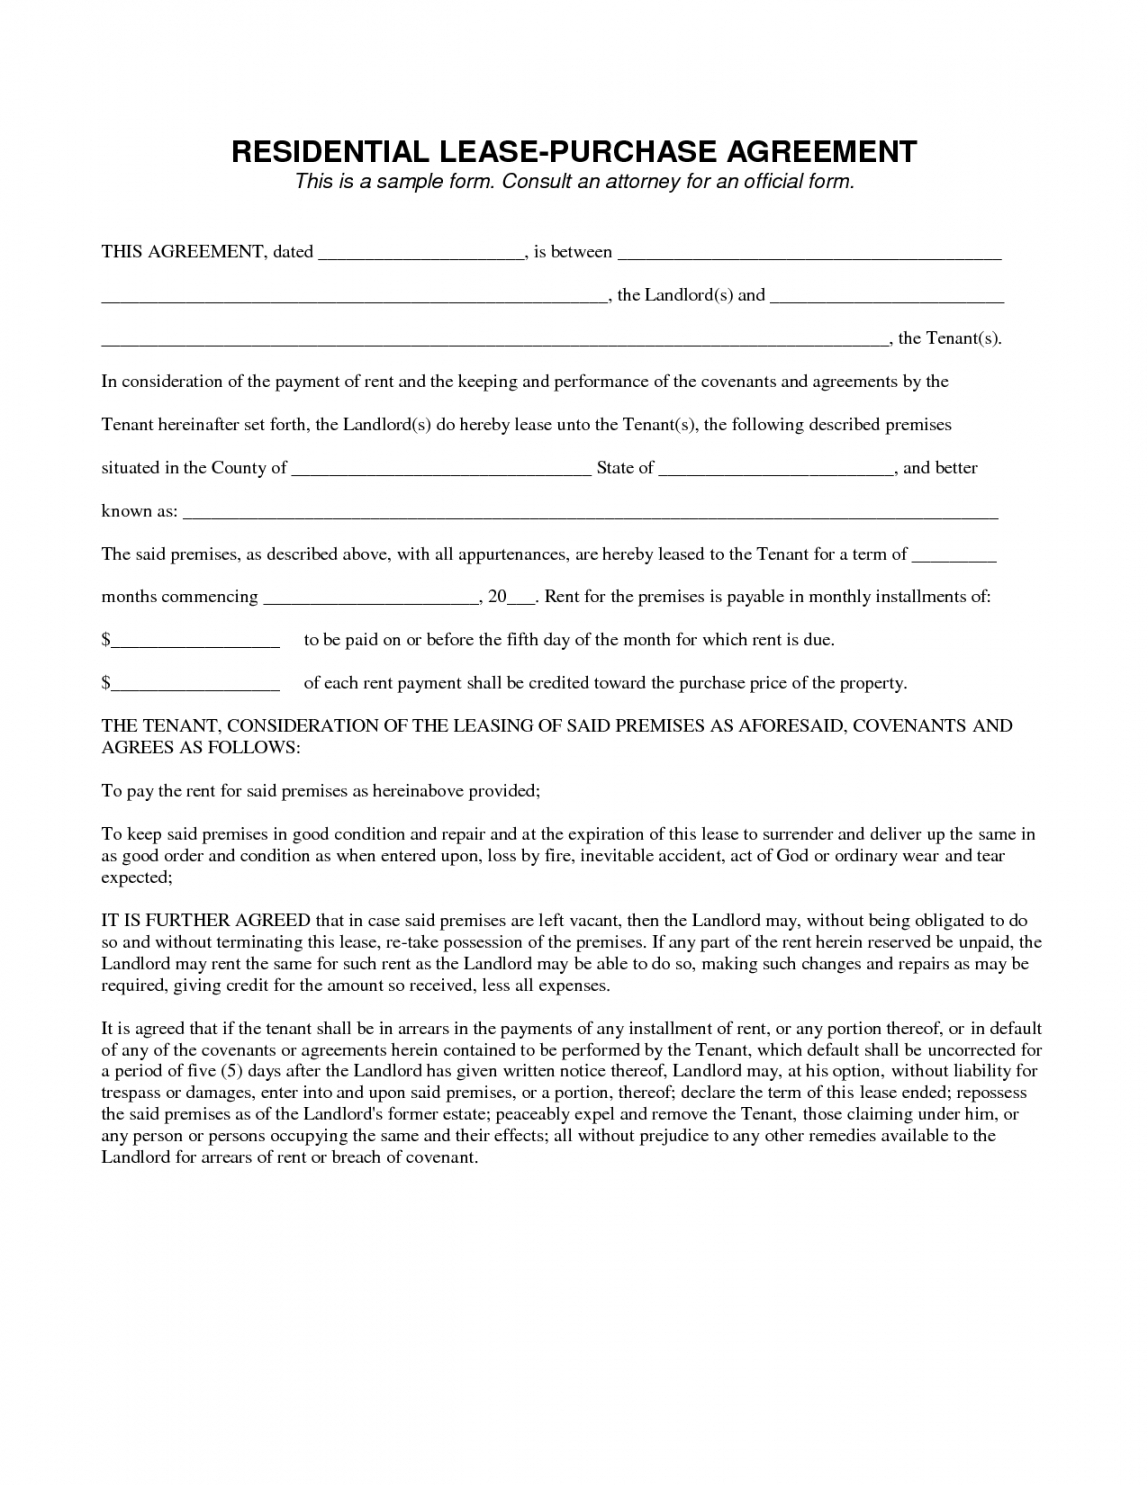 Contract Rental Agreement Template Editable Lease To Own Contract Template Legal Agreement Contract